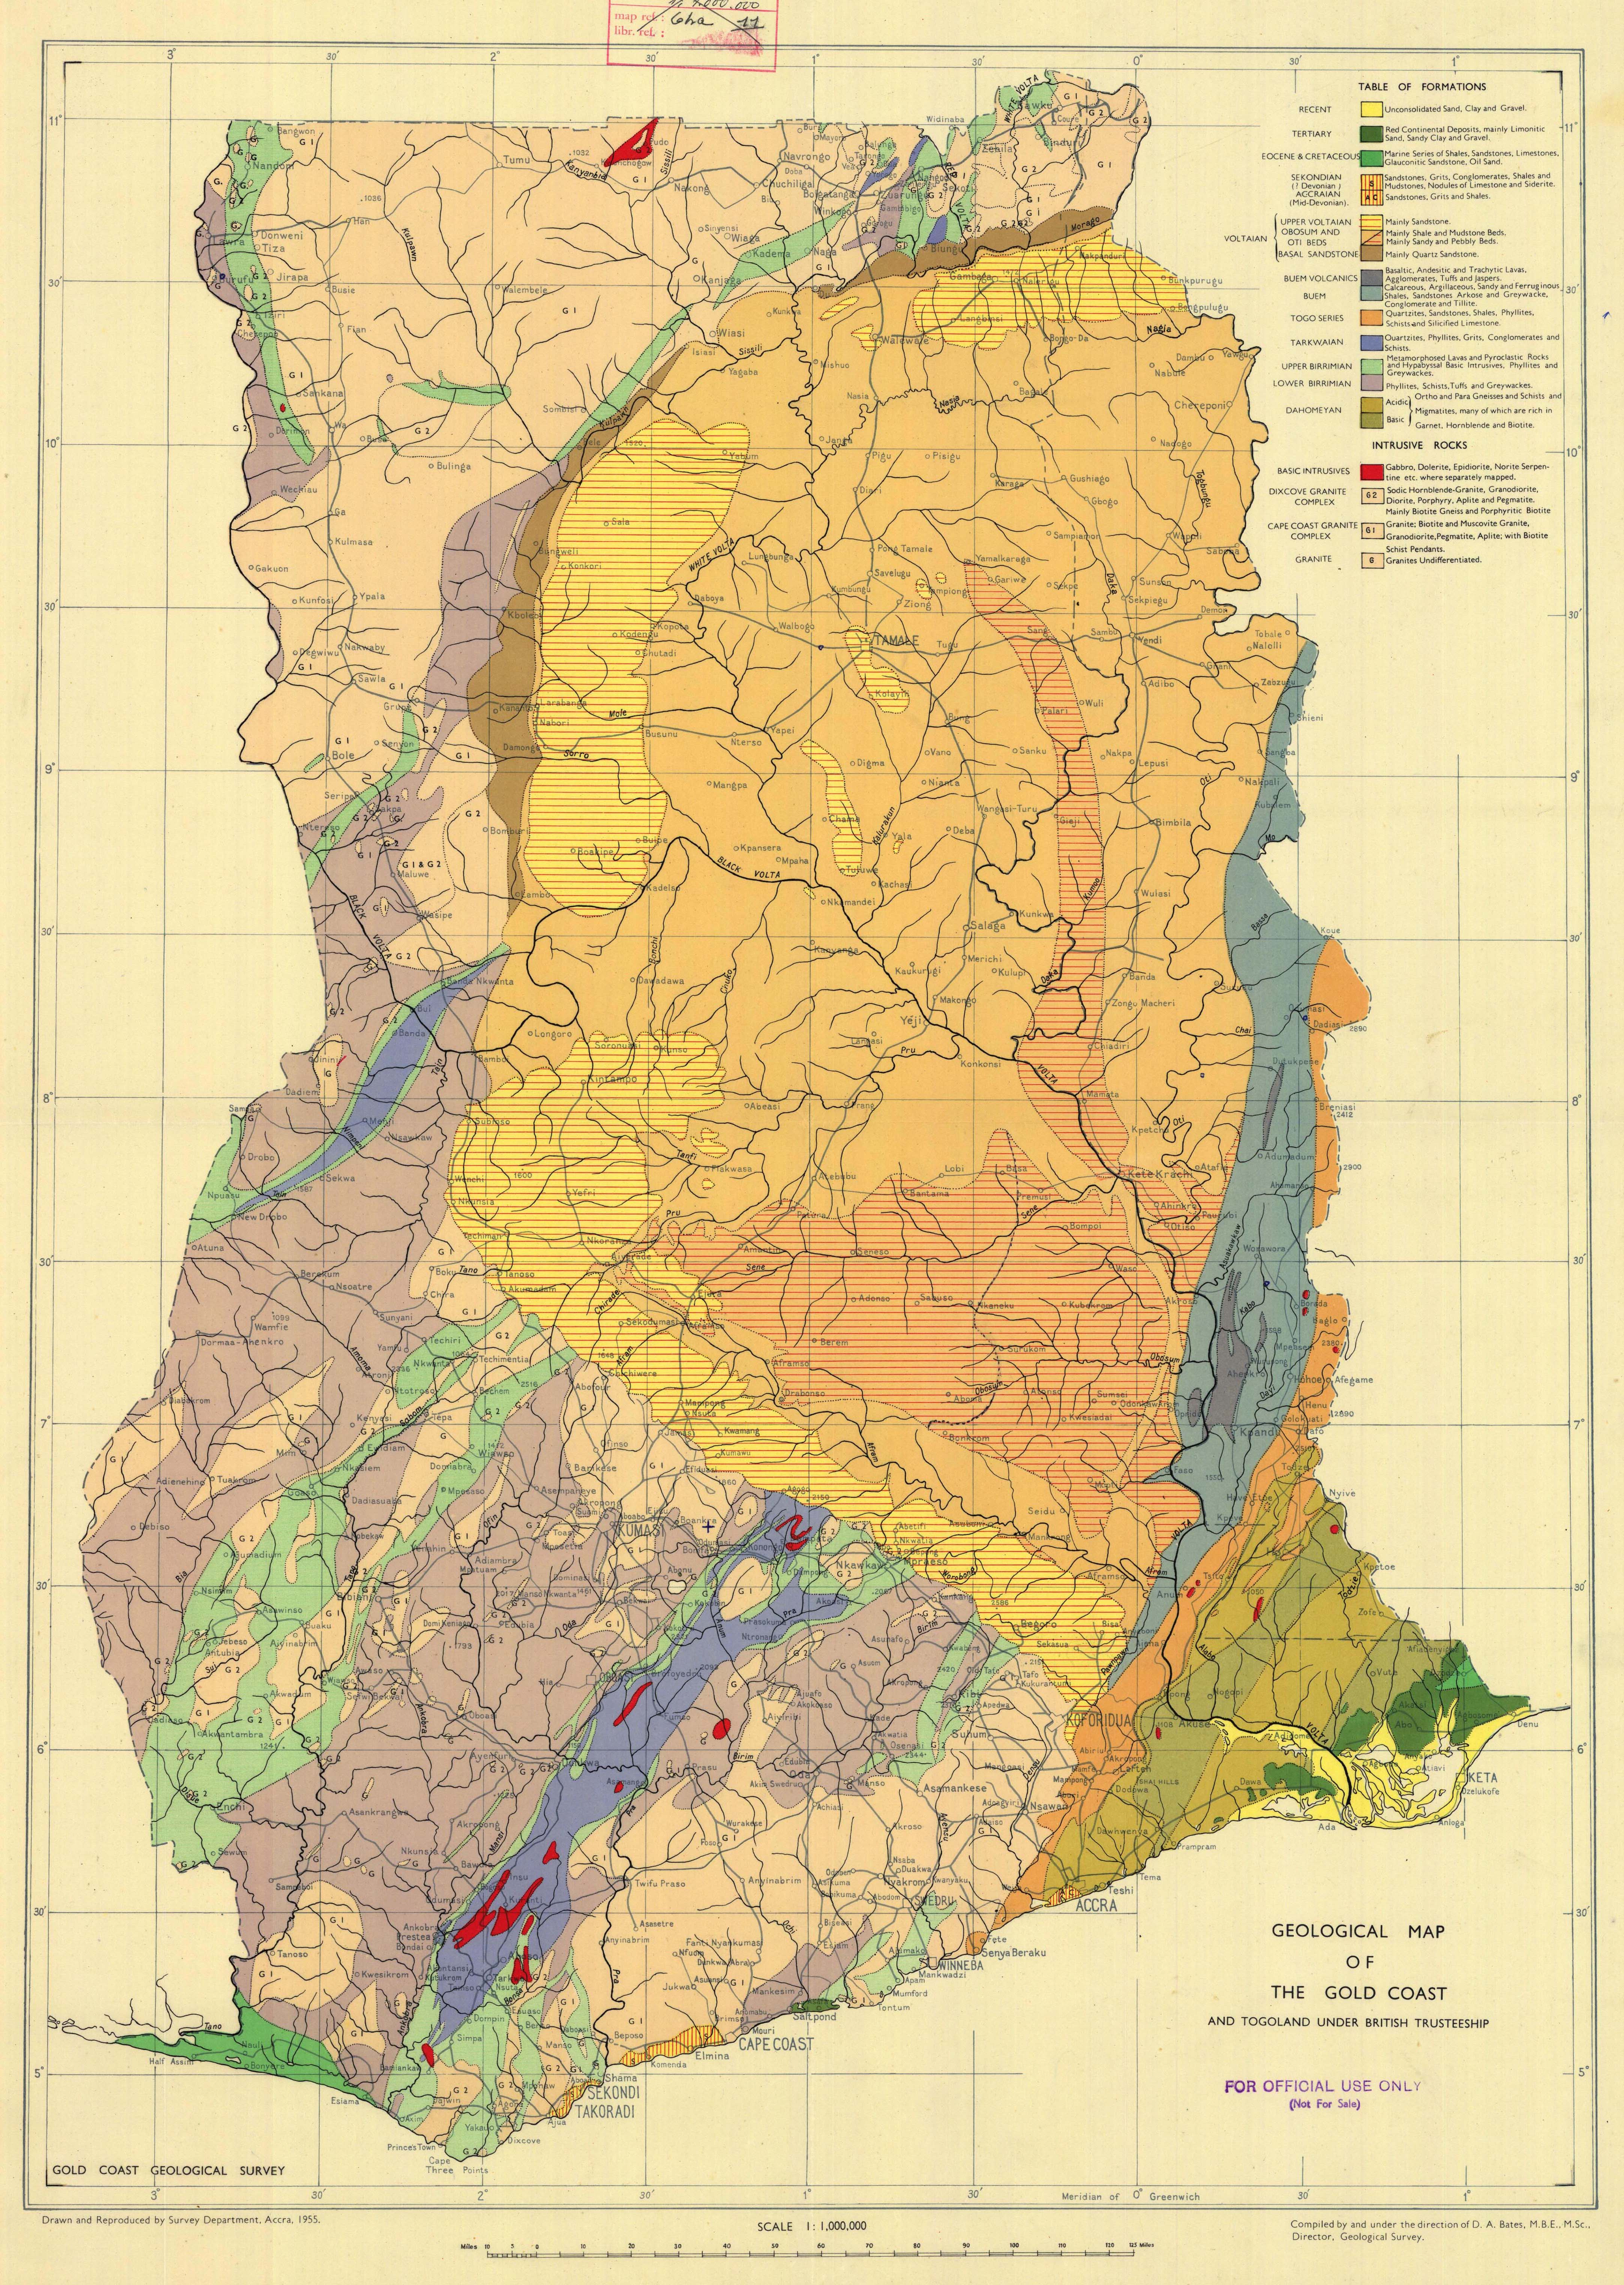 Geological Map Of The Gold Coast Esdac European Commission